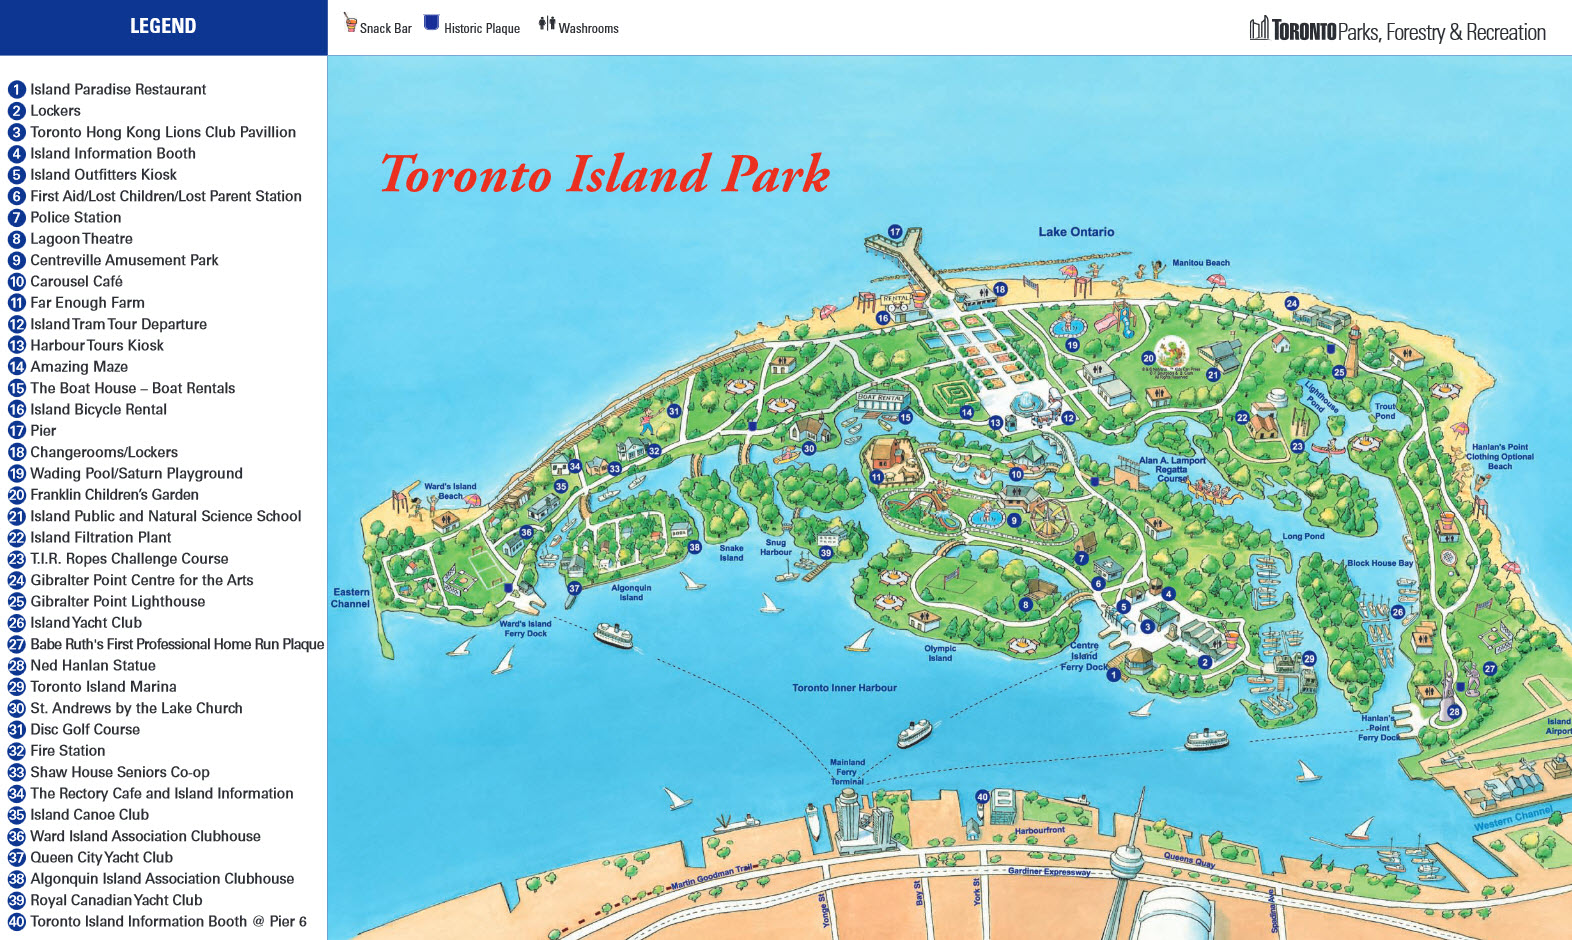 How Much To Get To Toronto Island